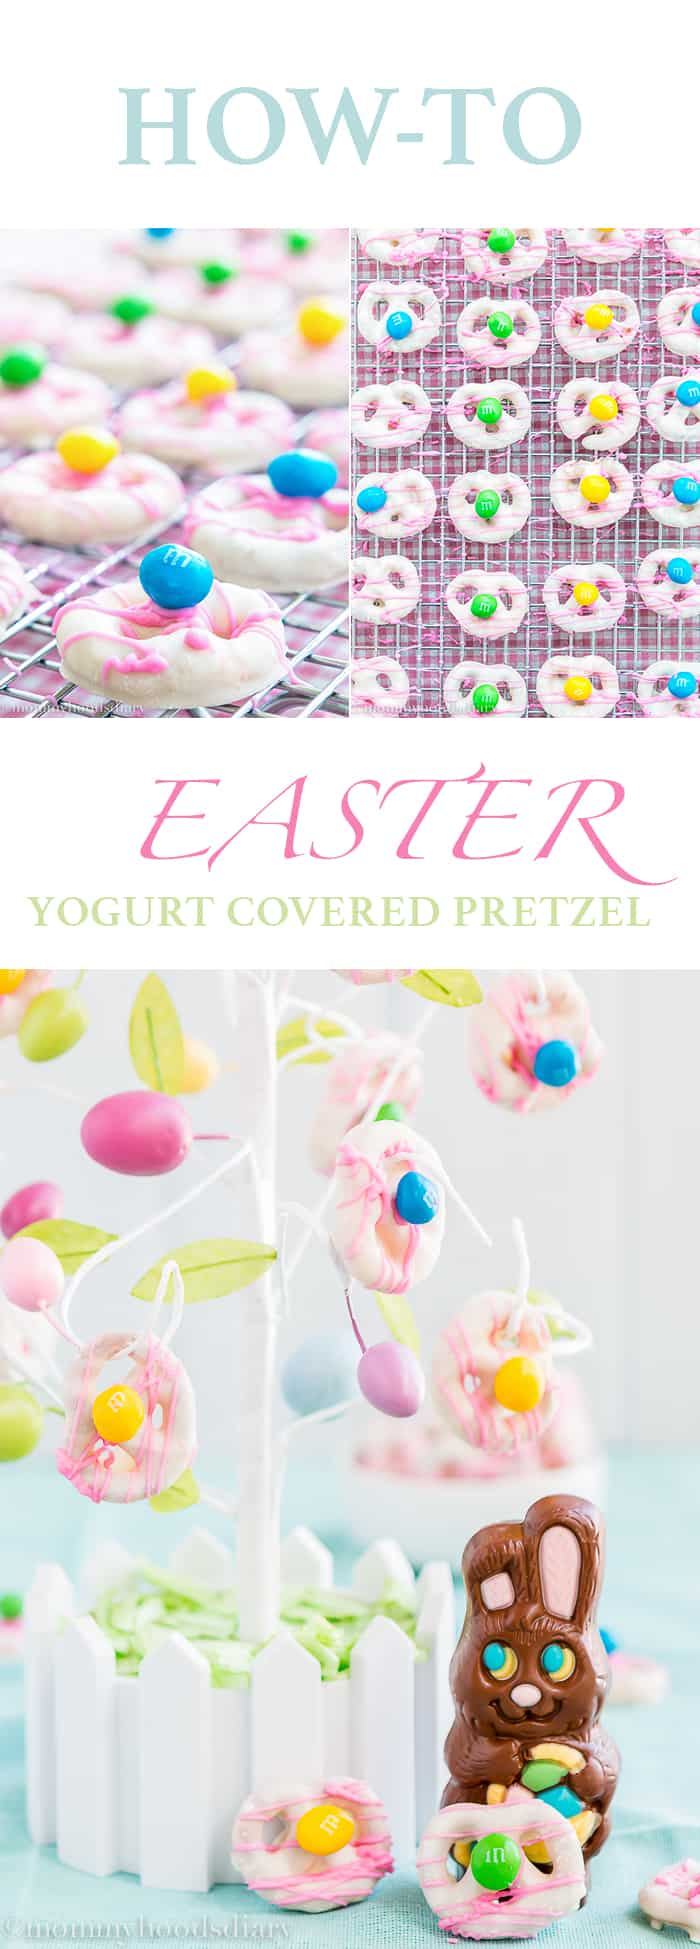 How To Easter Yogurt Covered Pretzels | Mommyhood's Diary